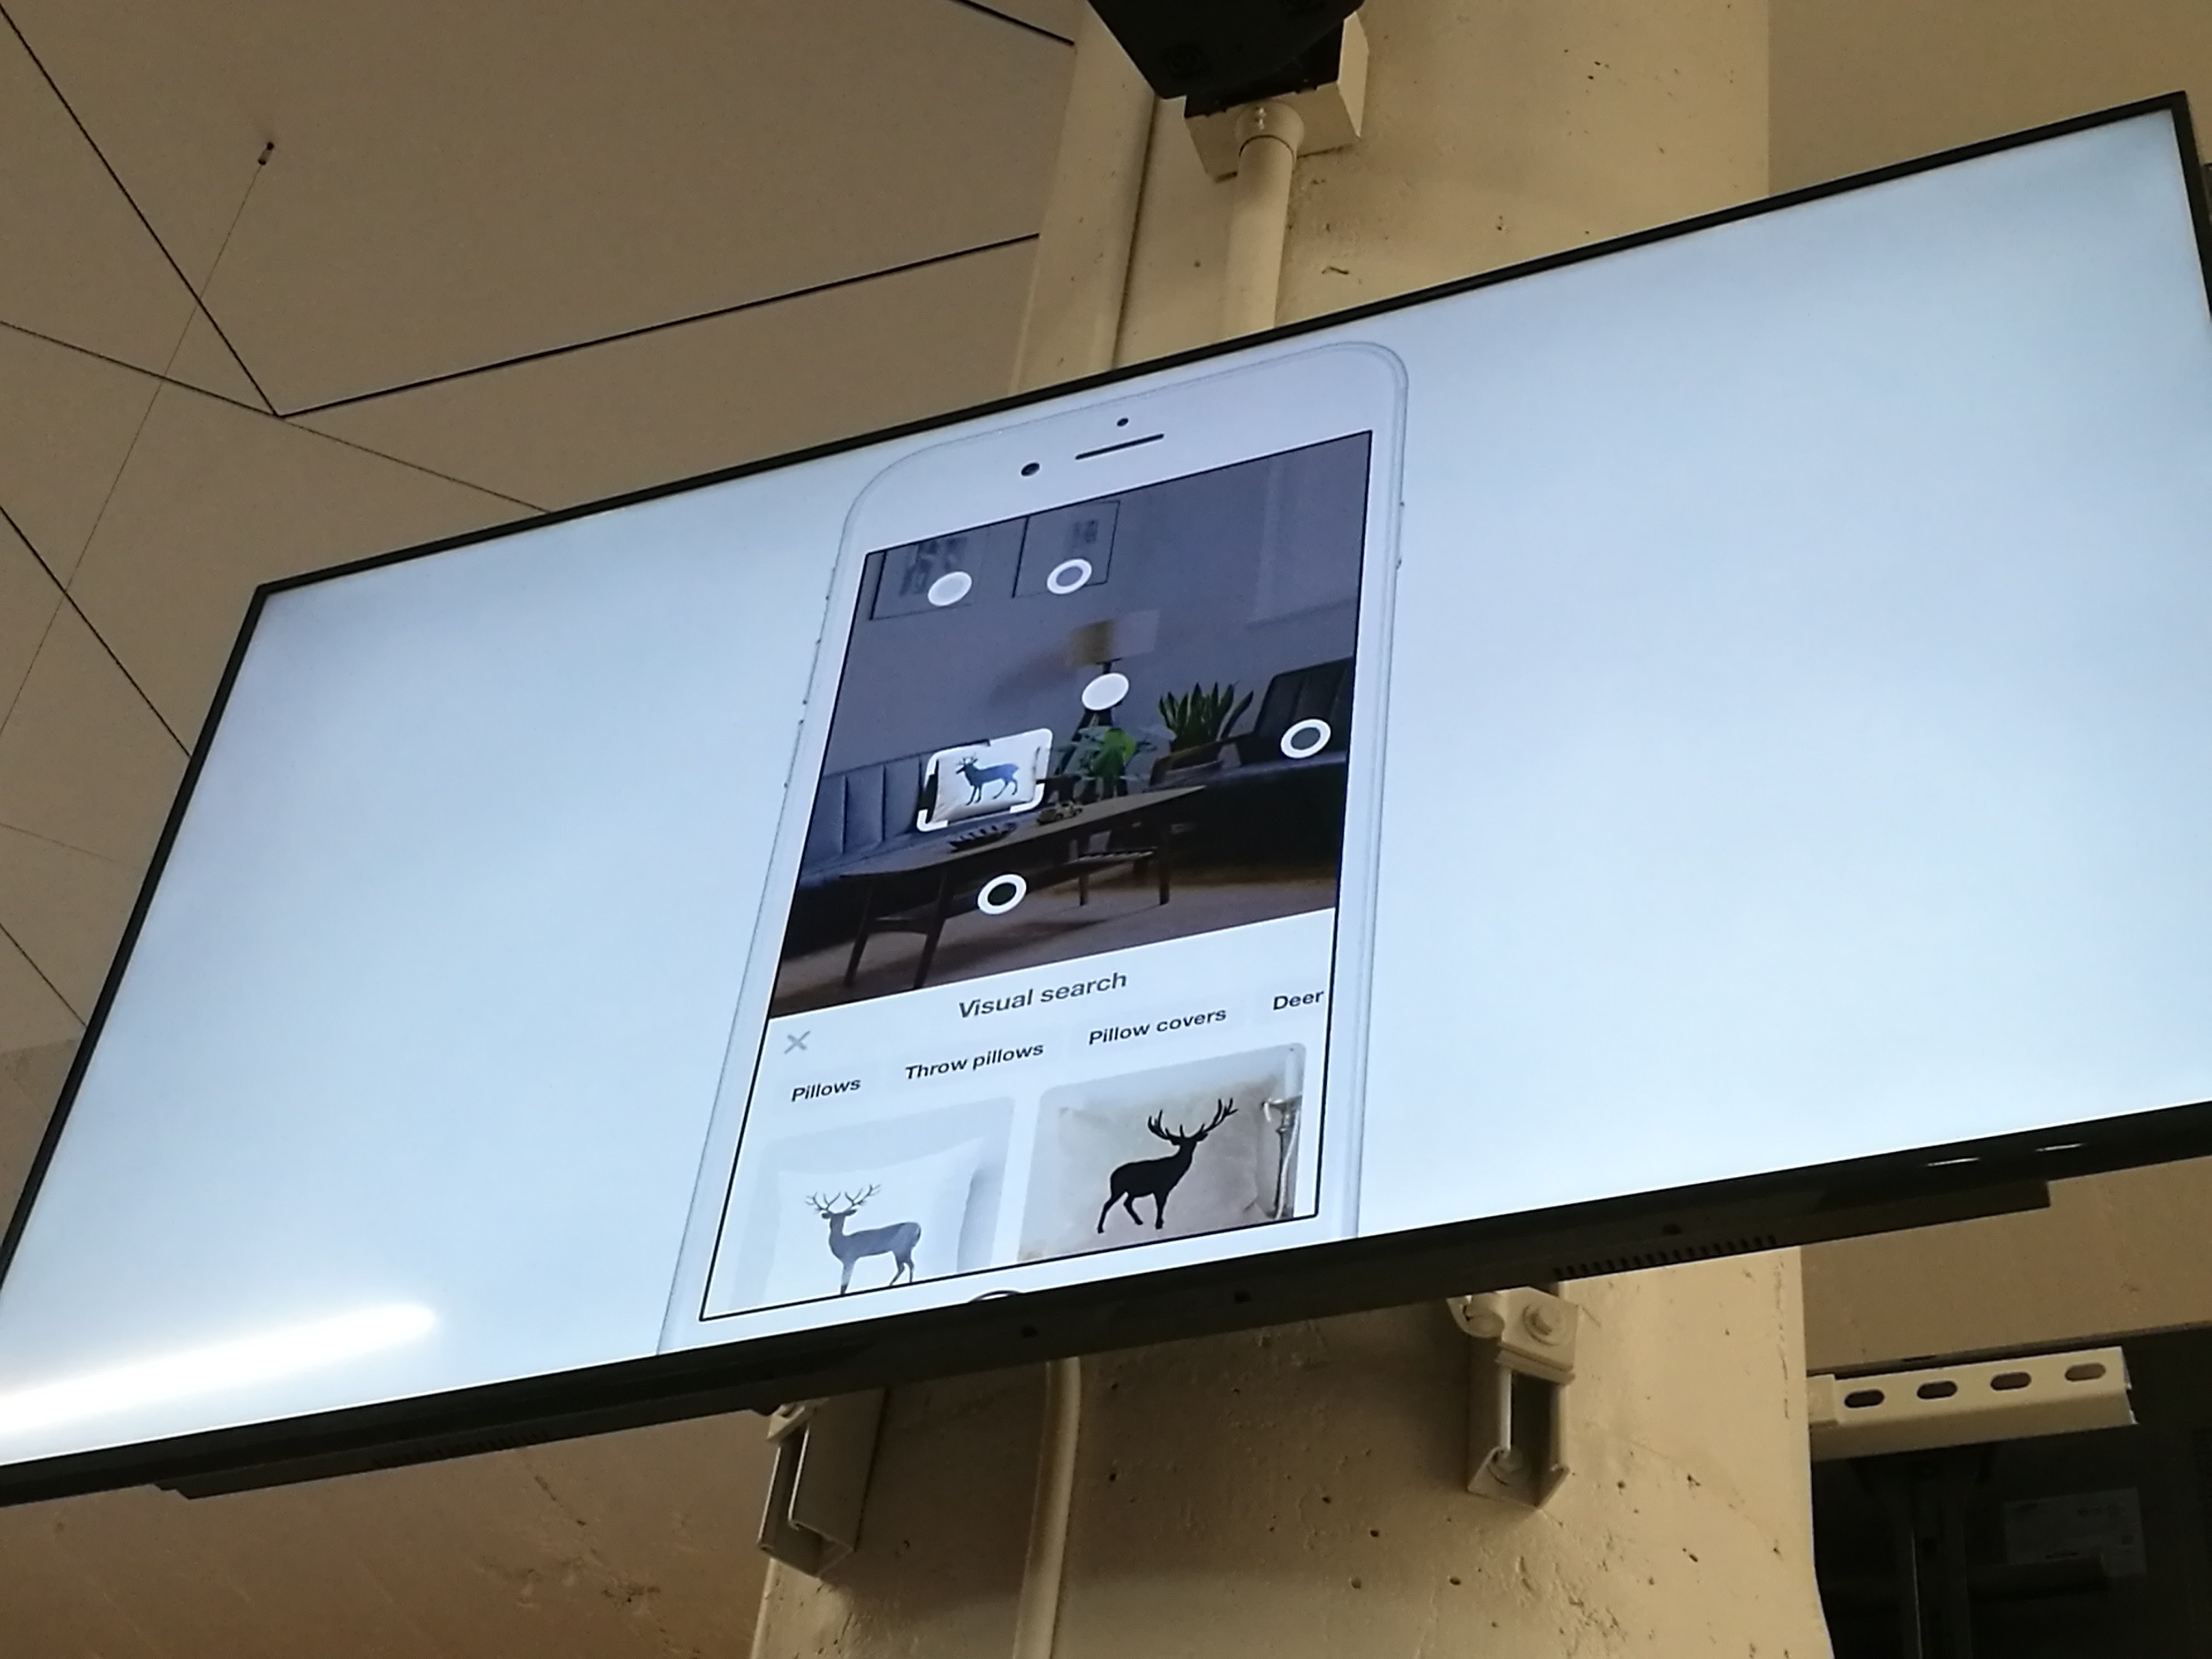 Pinterest visual search with the camera on iOS.